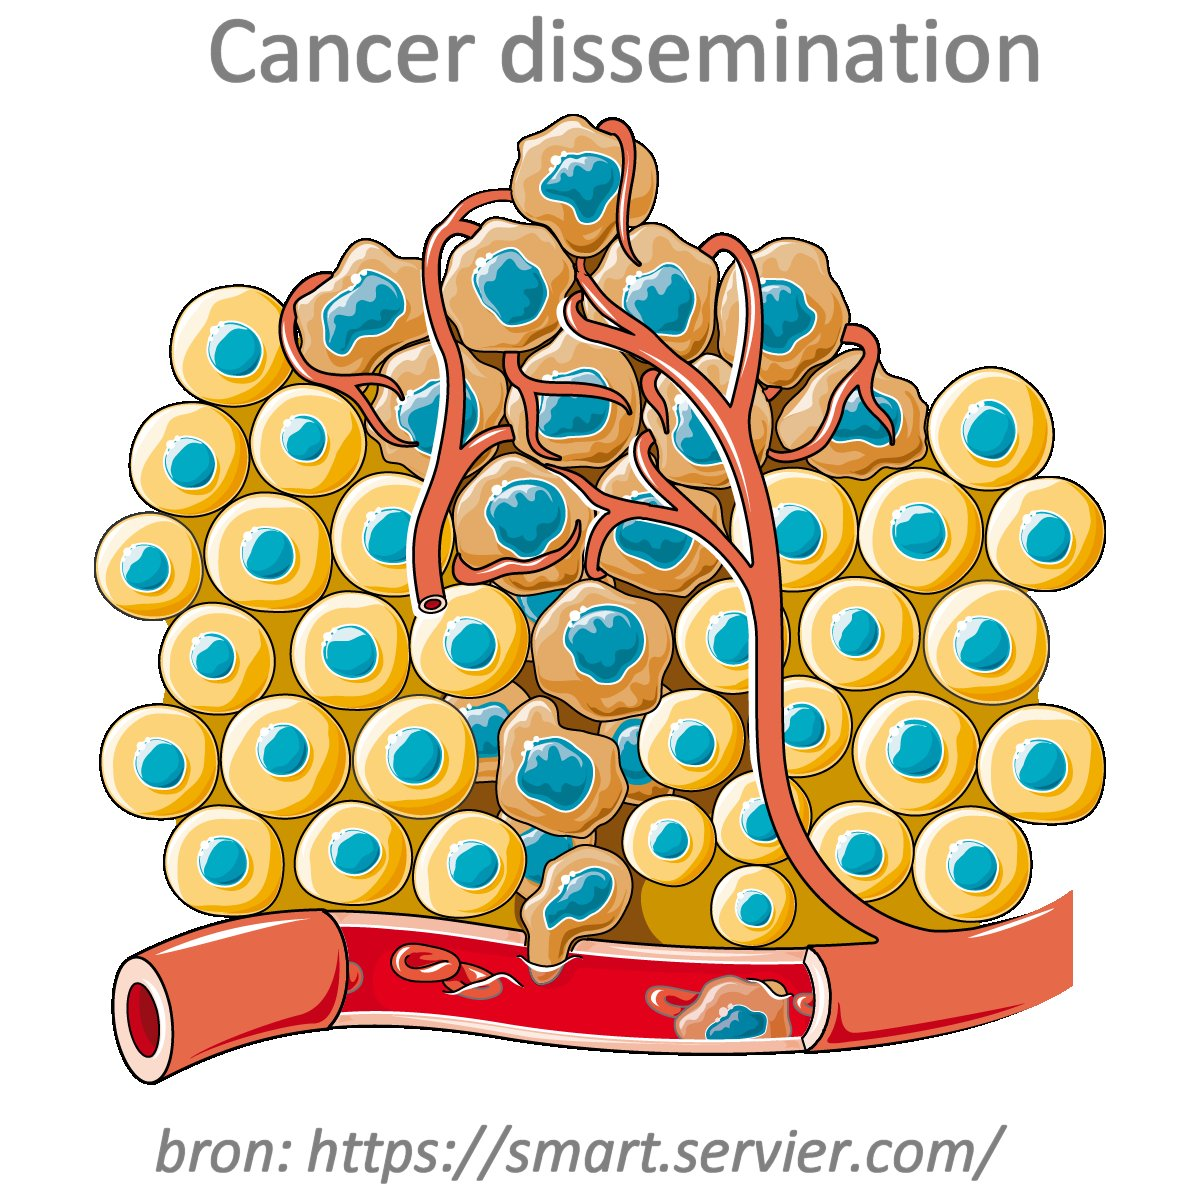 Cancer_dissemination